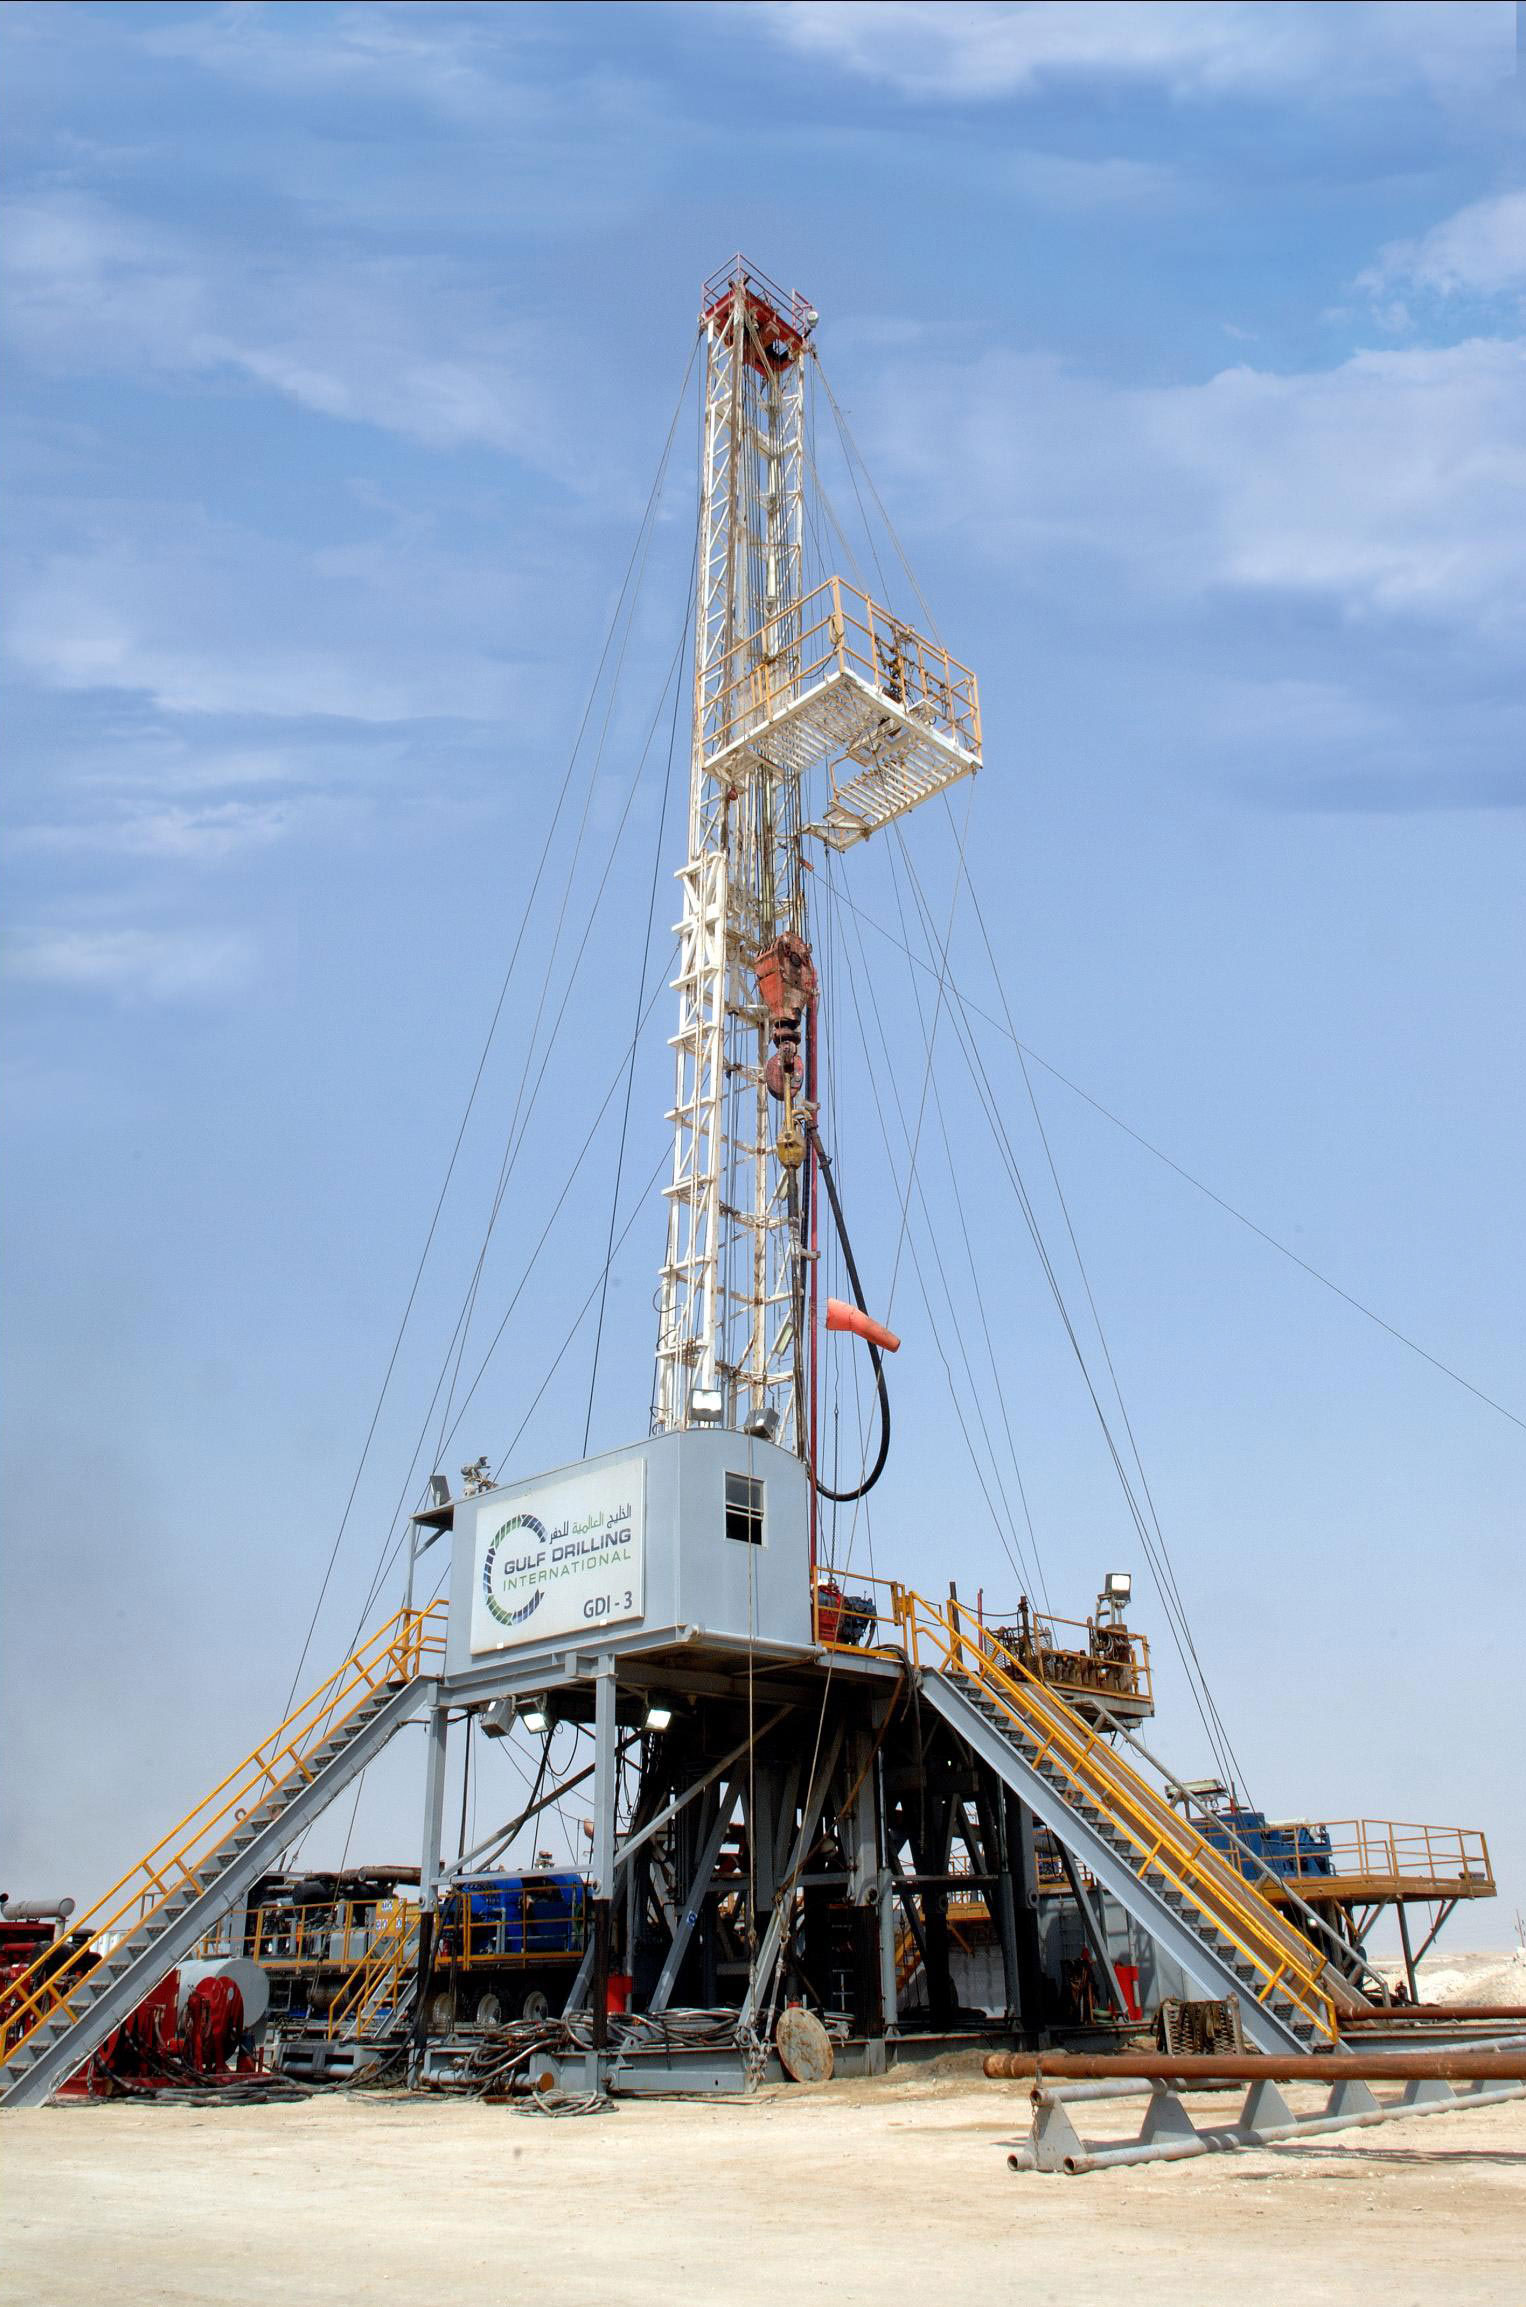 Gulf Drilling International Limited (GDI) – The first onshore